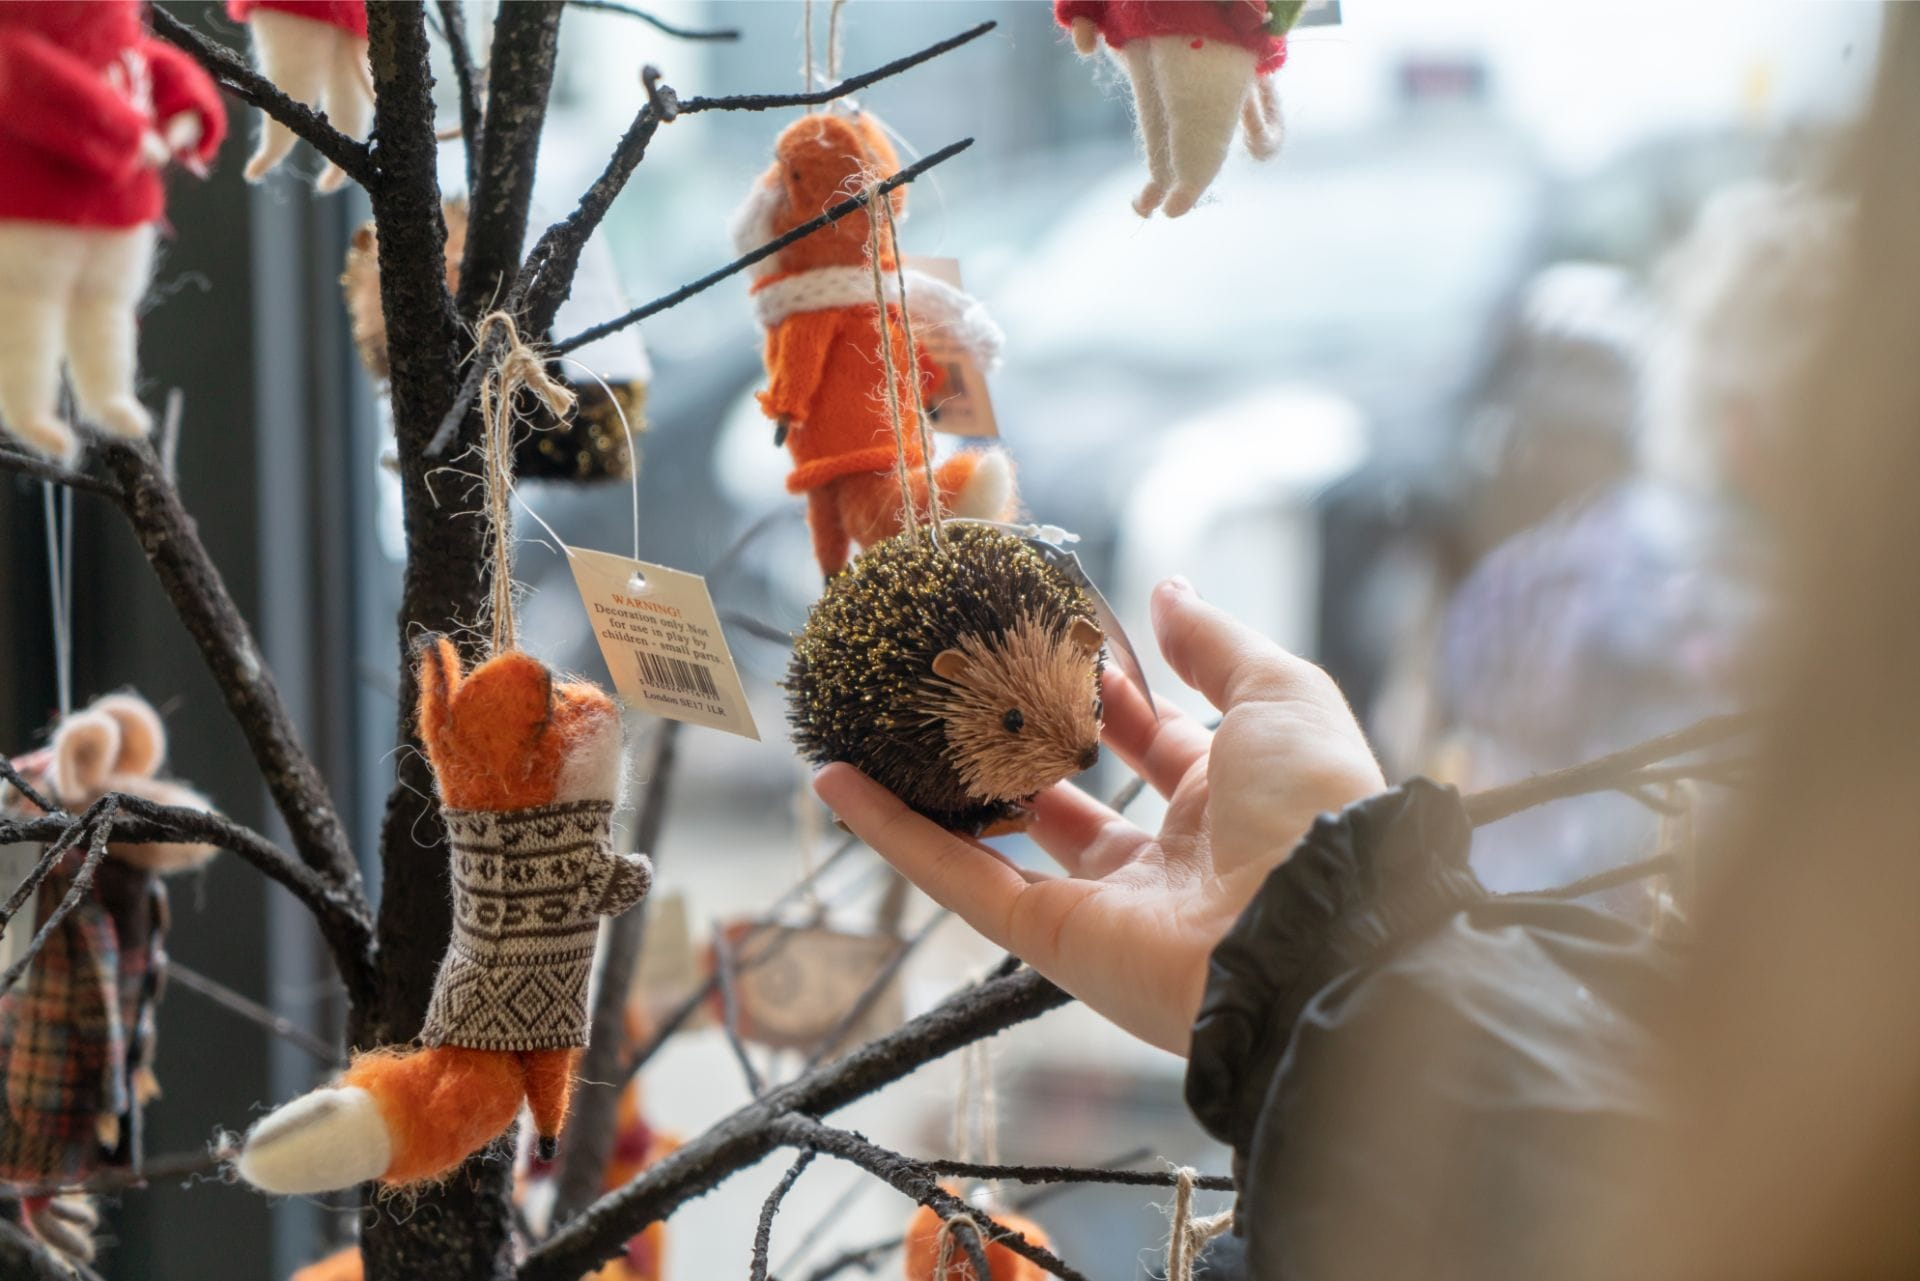 hedgehog-christmas-decoration-ornament-hanging-off-wood-tree-in-shop-the-gower-gallery-mumbles-swansea-bay-wales